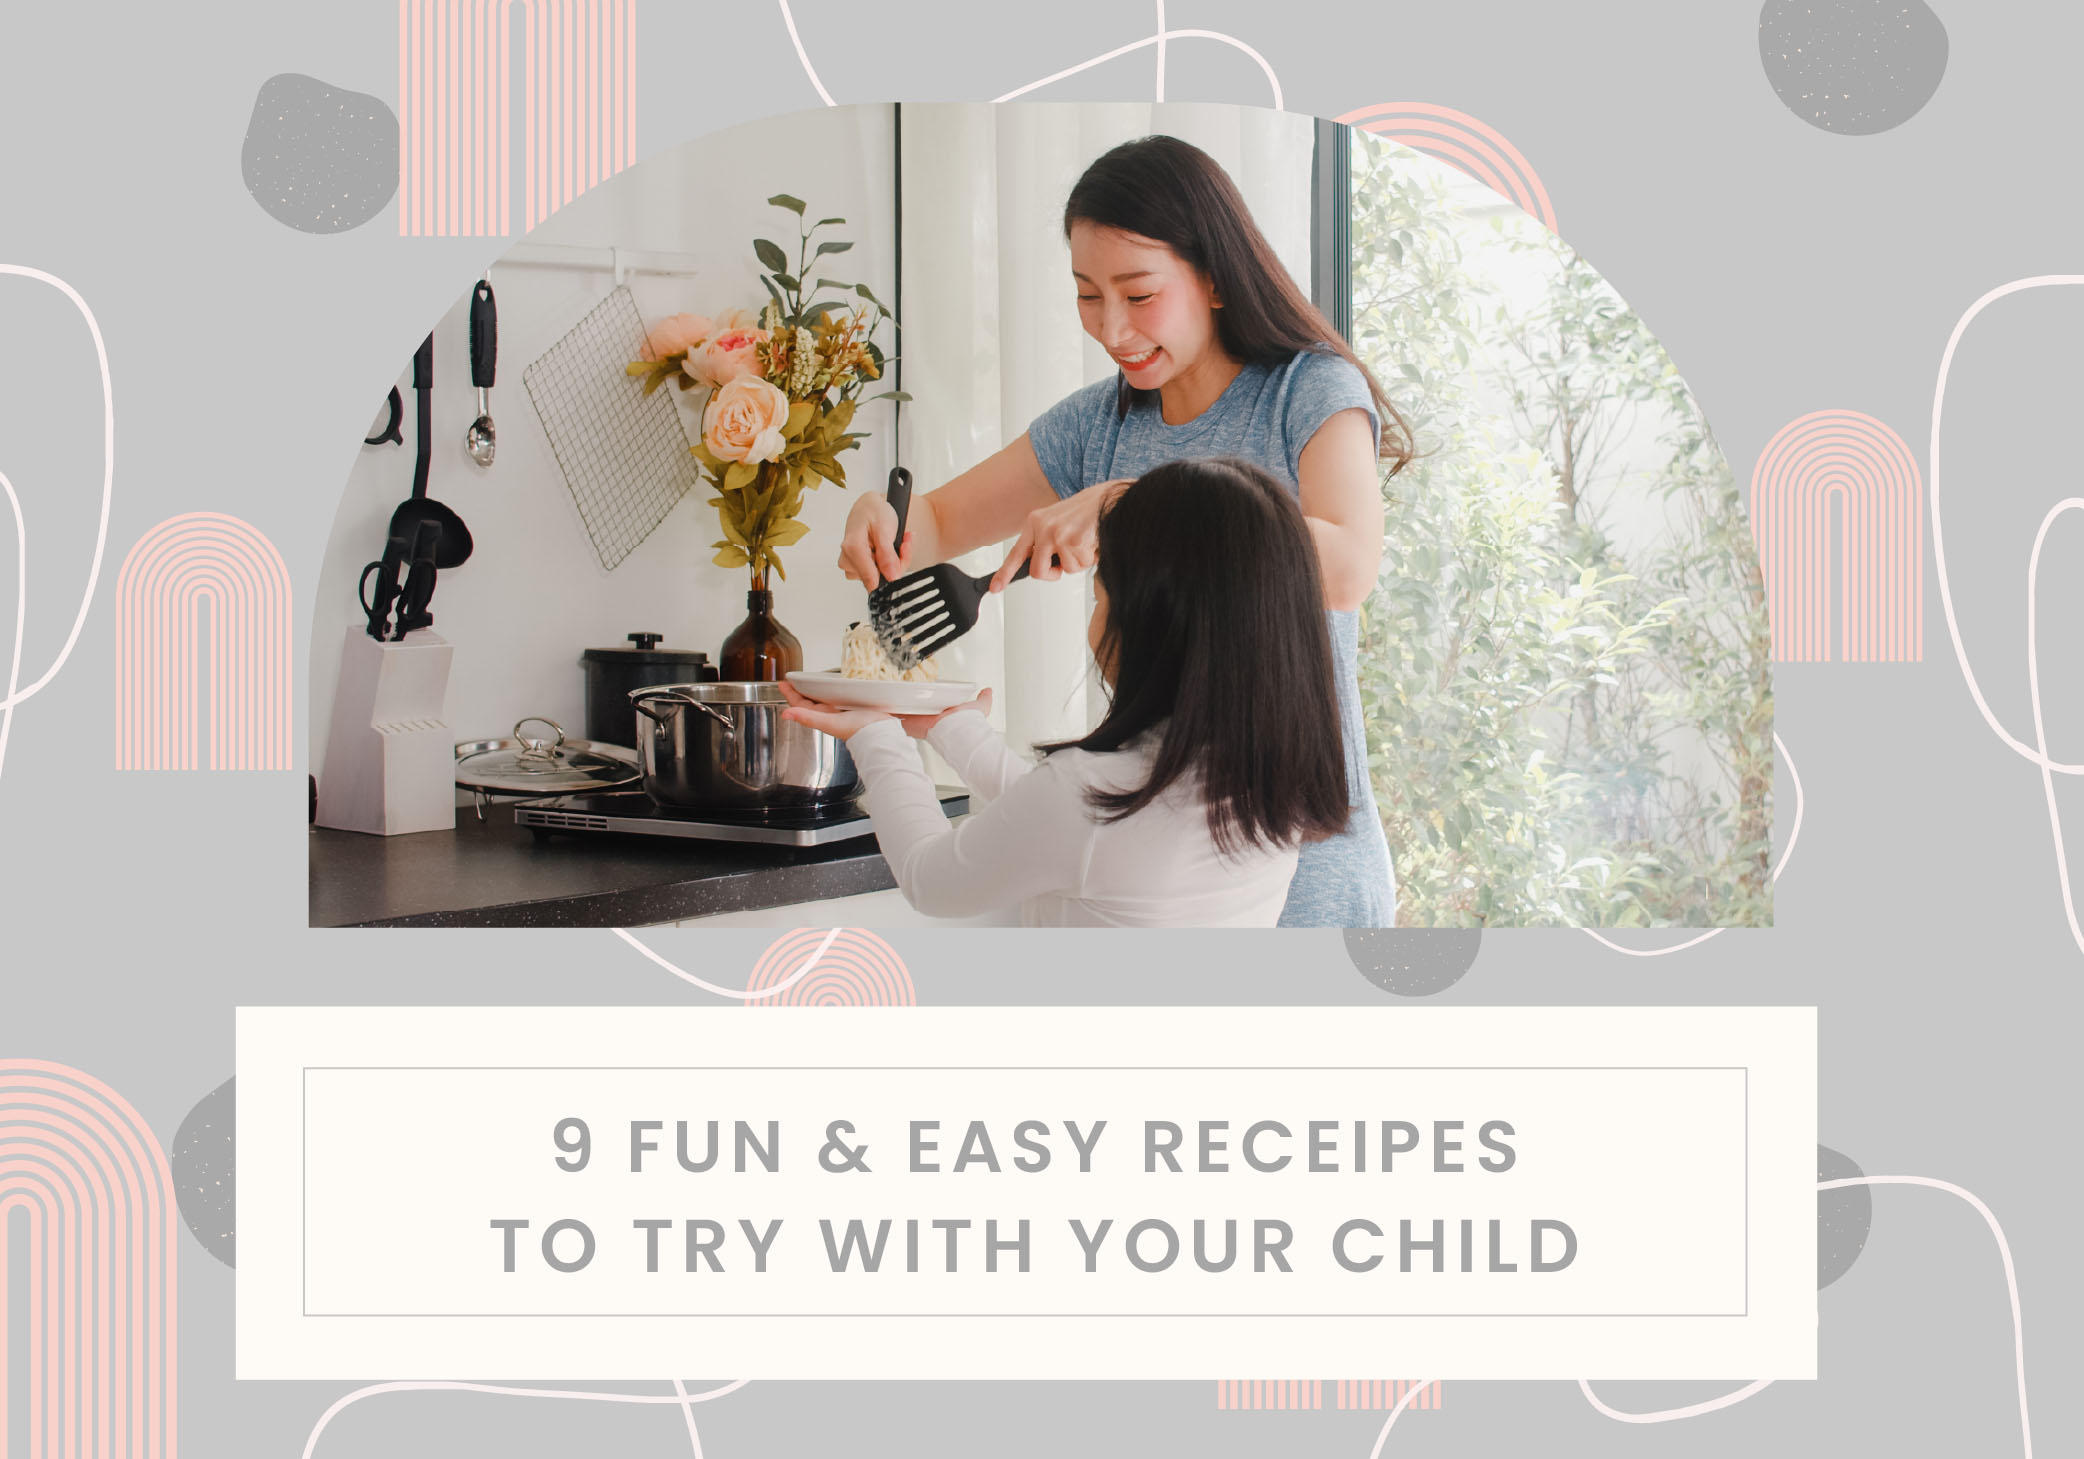 9 Fun and Easy Recipes to Try With Your Child